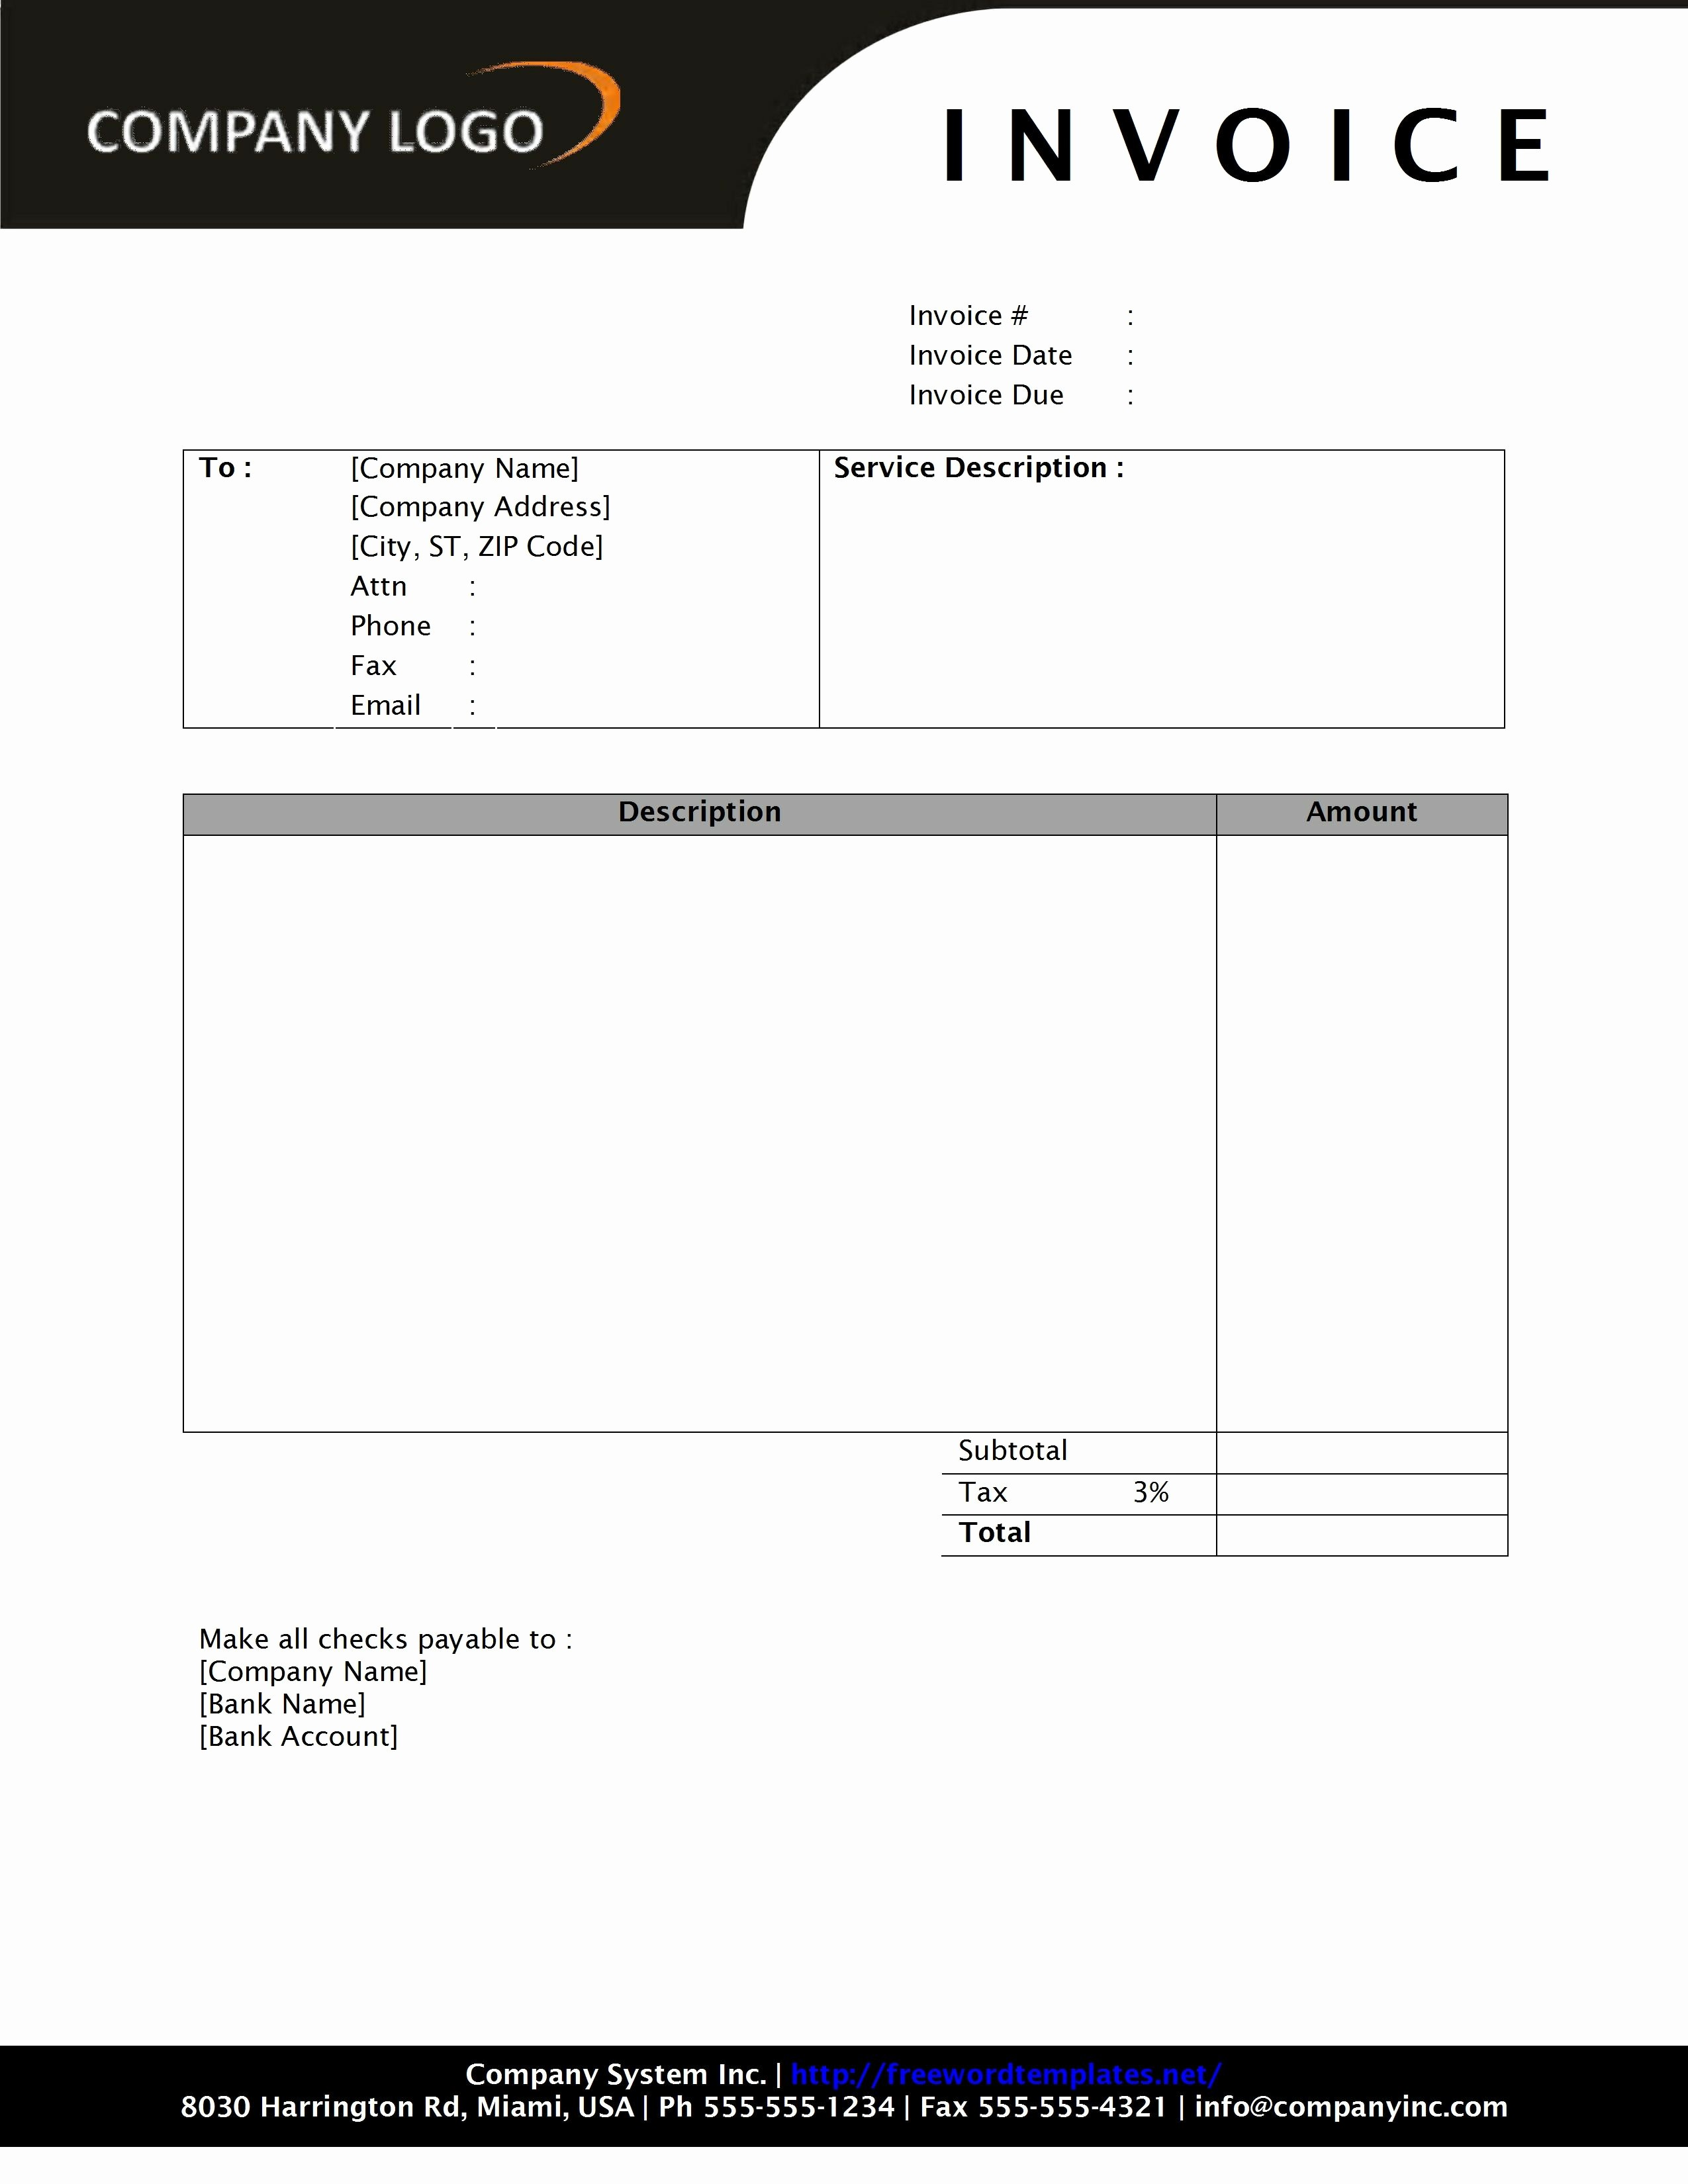 Free Templates for Billing Invoices Luxury Invoice Template Word 2010